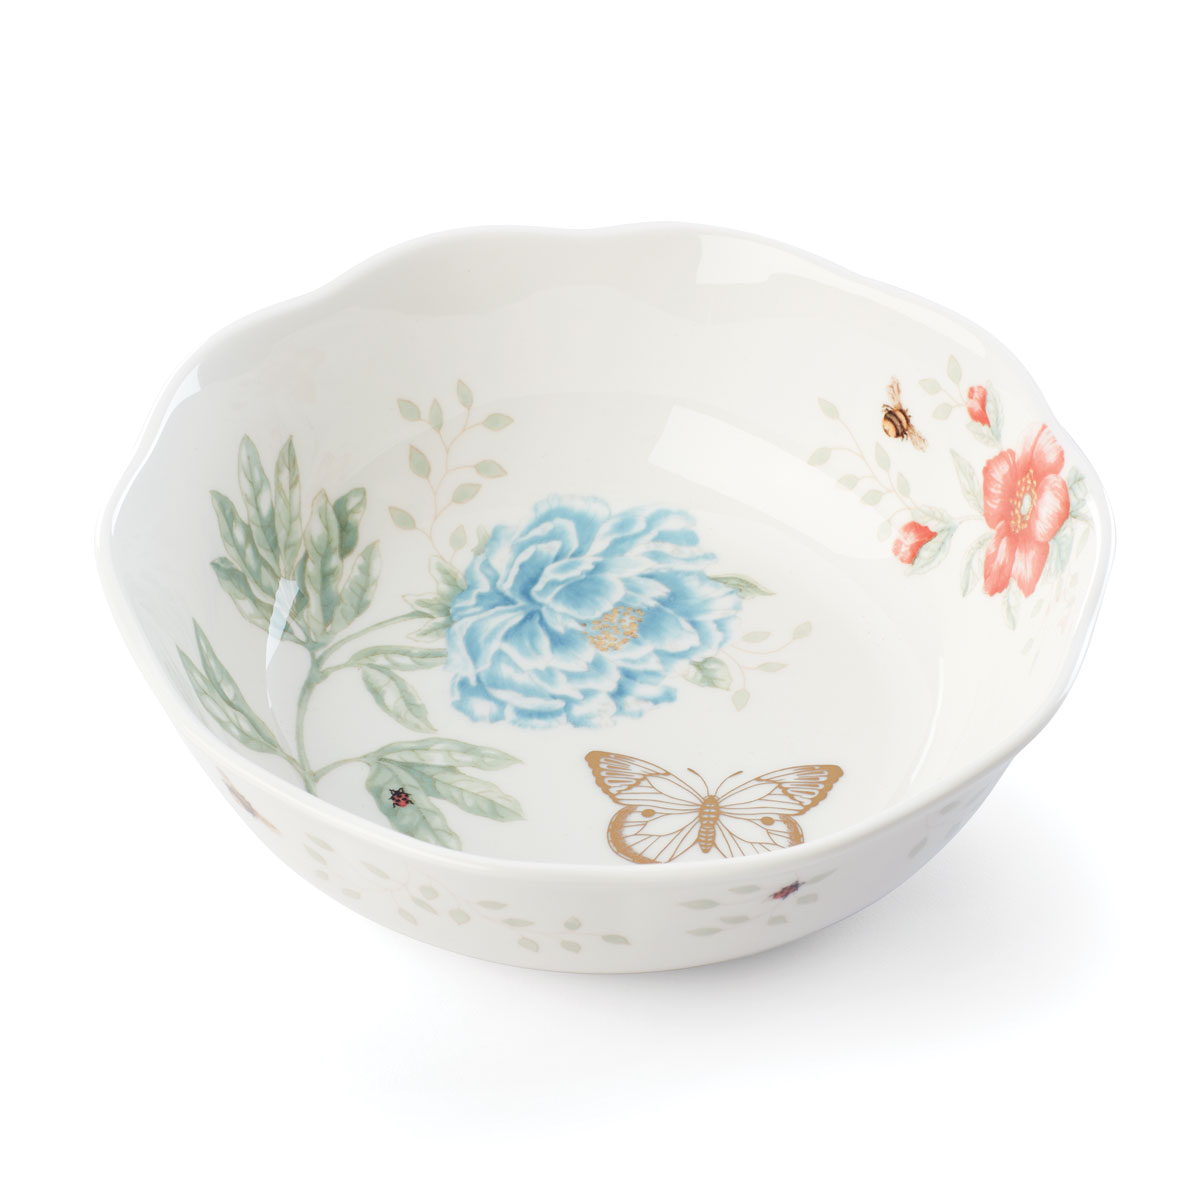 Lenox Butterly Meadow Gold Dinnerware Soup Bowl Gold 20th